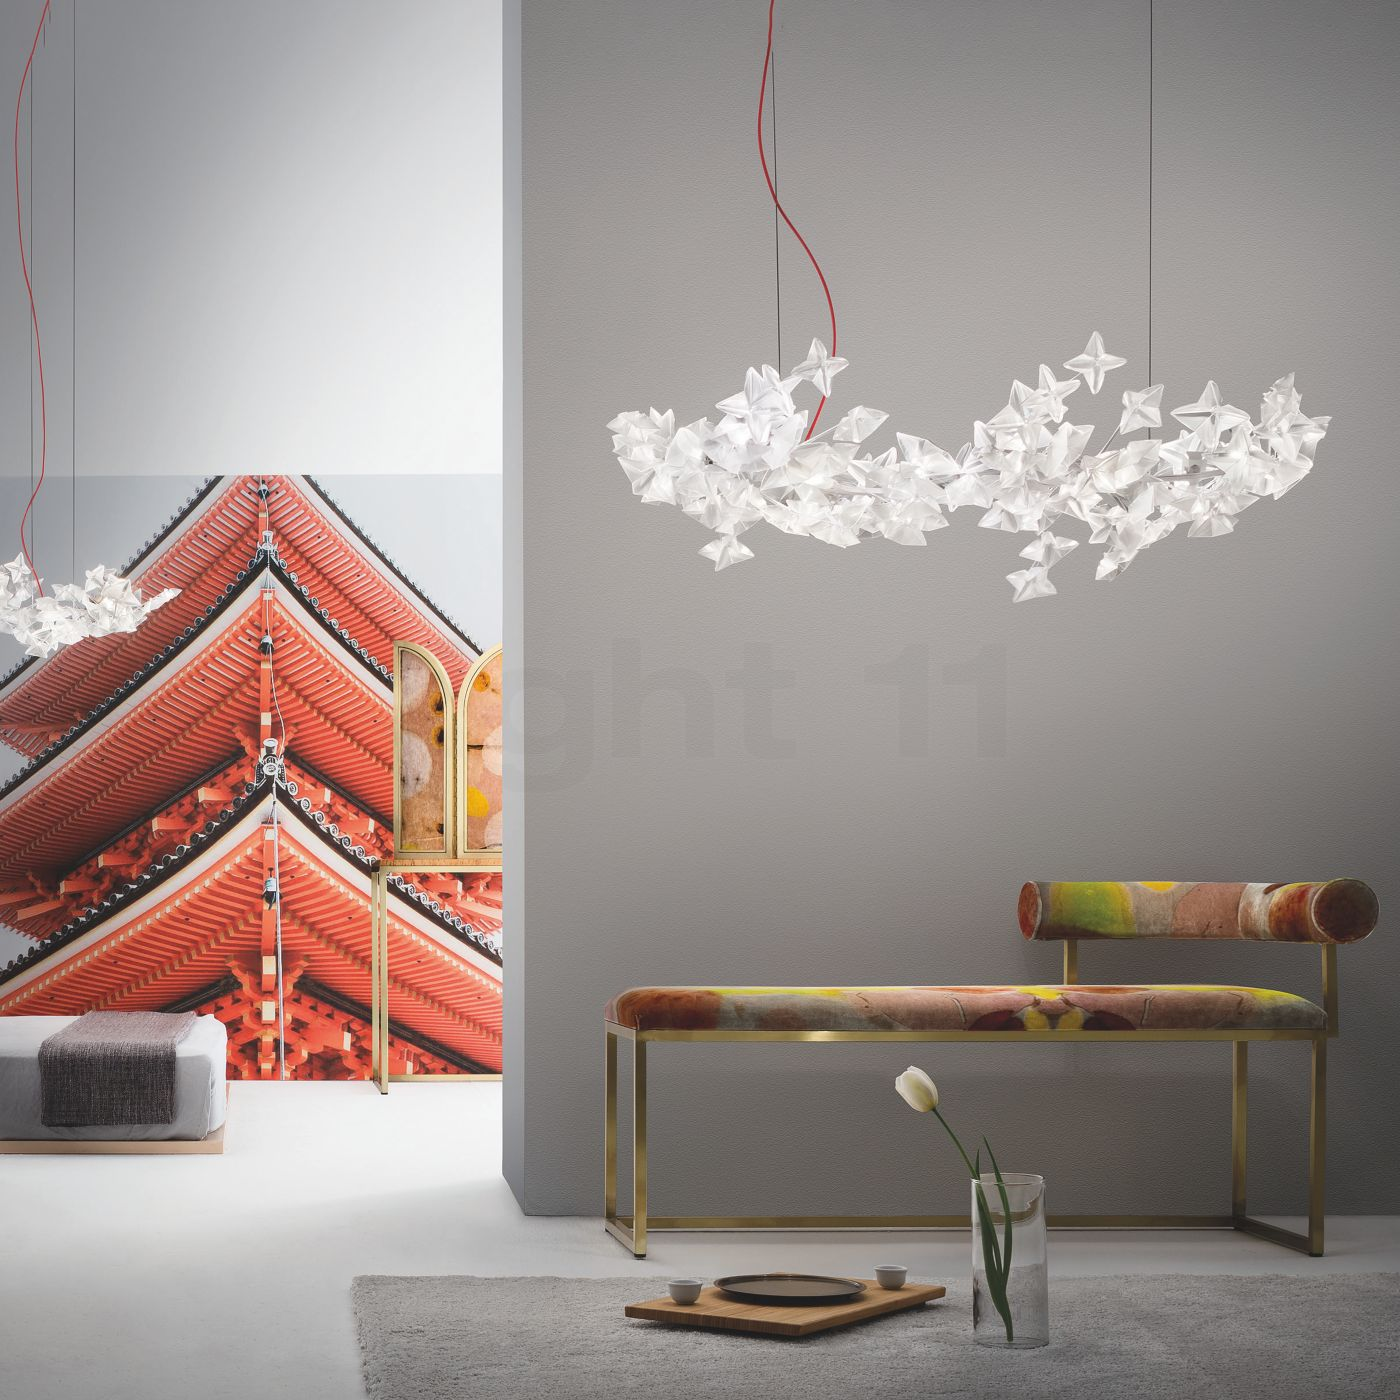 Led Esstischlampe Pendant Light Hanami L Grey Led Ø96cm P26cm Red Cable Slamp